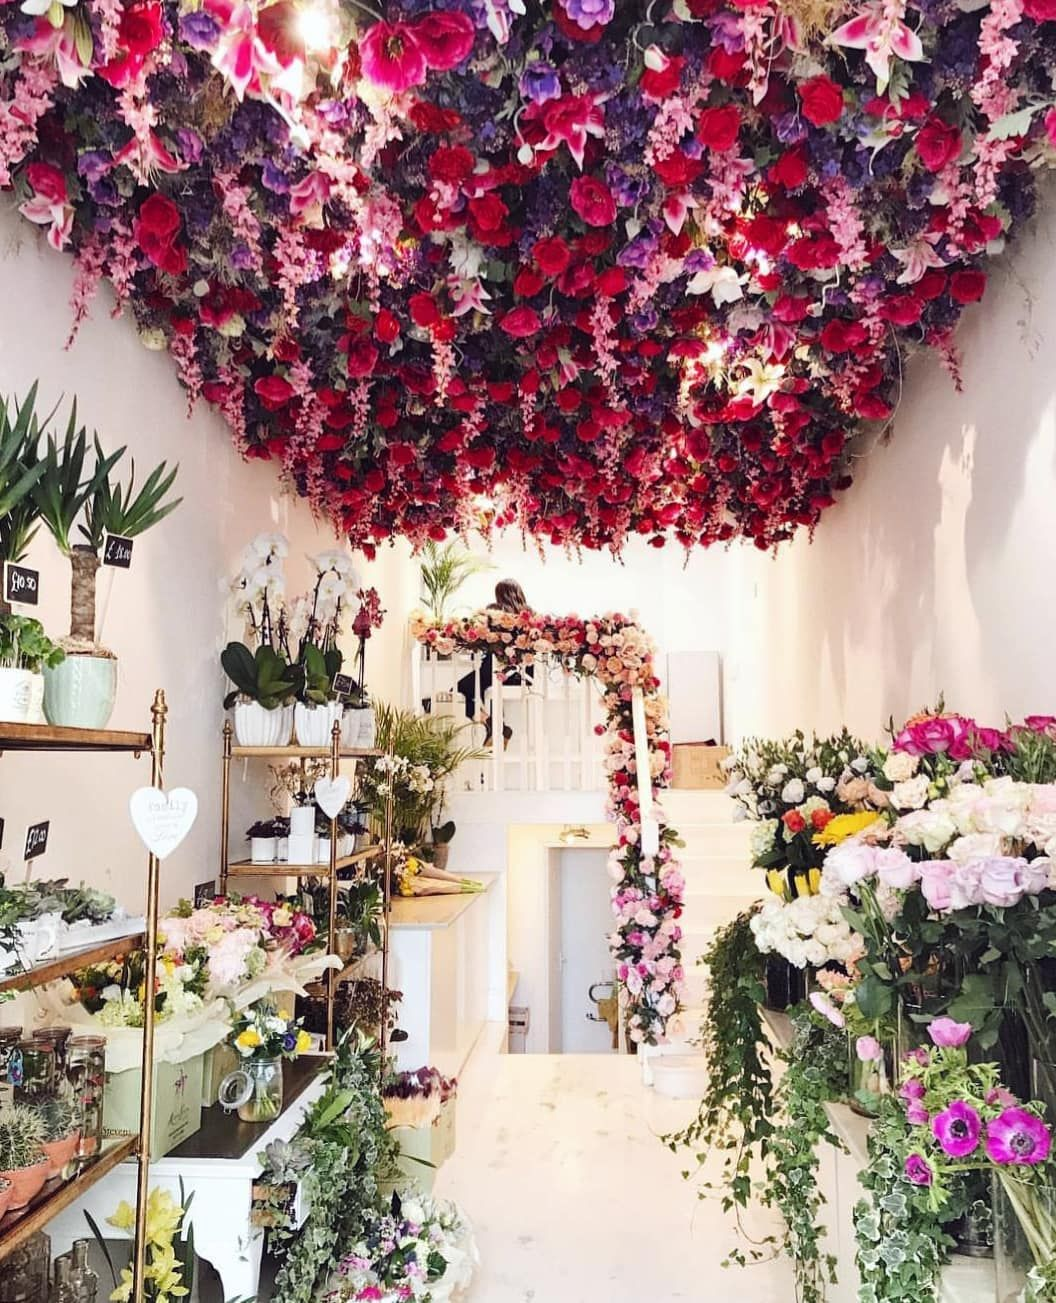 Good Morning London This Place Is Amazing Why Not Have A Flower Ceiling If You Re A Florist Shop And Flower Ceiling Flower Shop Interiors Flower Shop Display